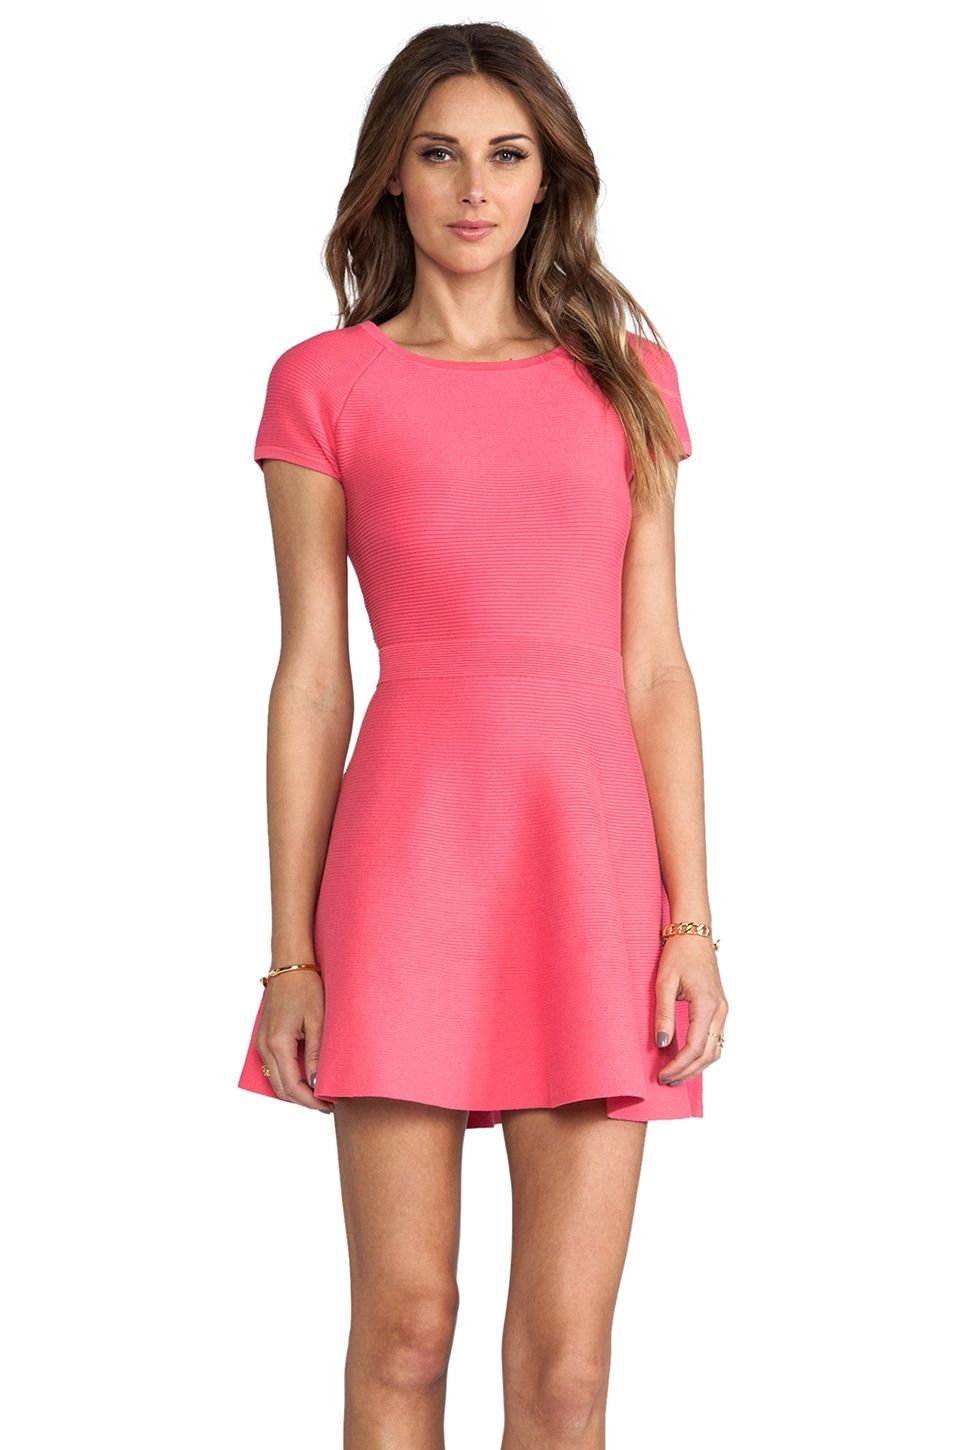 Trina Turk Cozumel Dress in Hot Coral